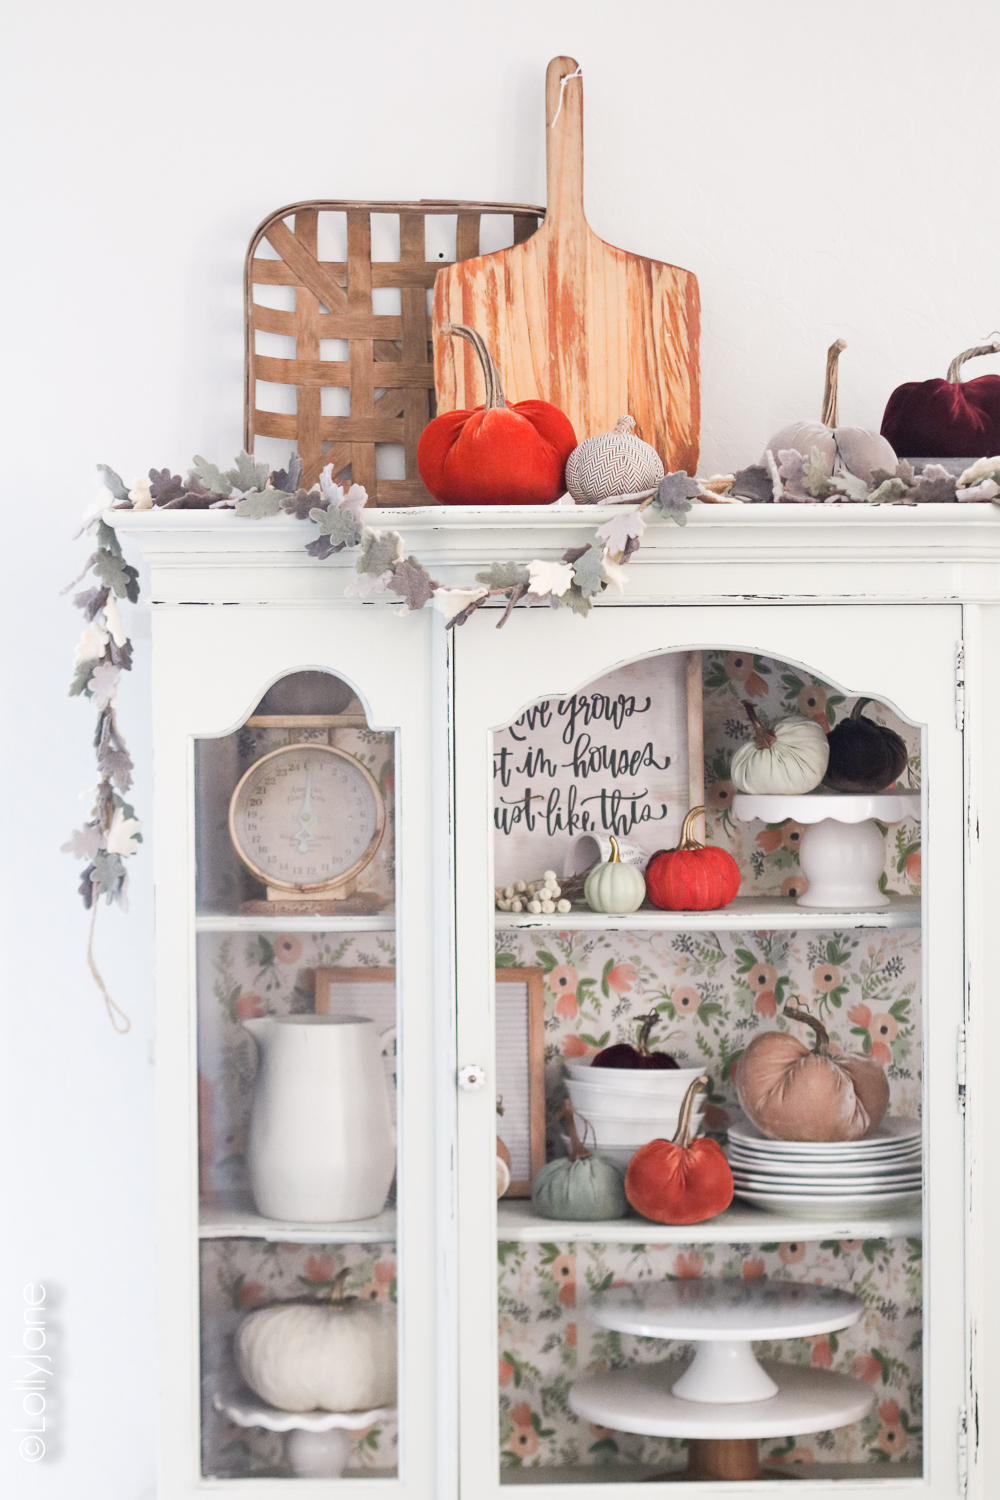 Simple fall decorations... a garland, plush pumpkins, and white dinnerwear make for a bright autumn space! Click to see 5 other fall homes, so beautiful! Add garland and plush pumpkins to your hutch, cabinet, or buffet for instant autumn warmth! #diy #falldecor #homedecor #fallhomedecor